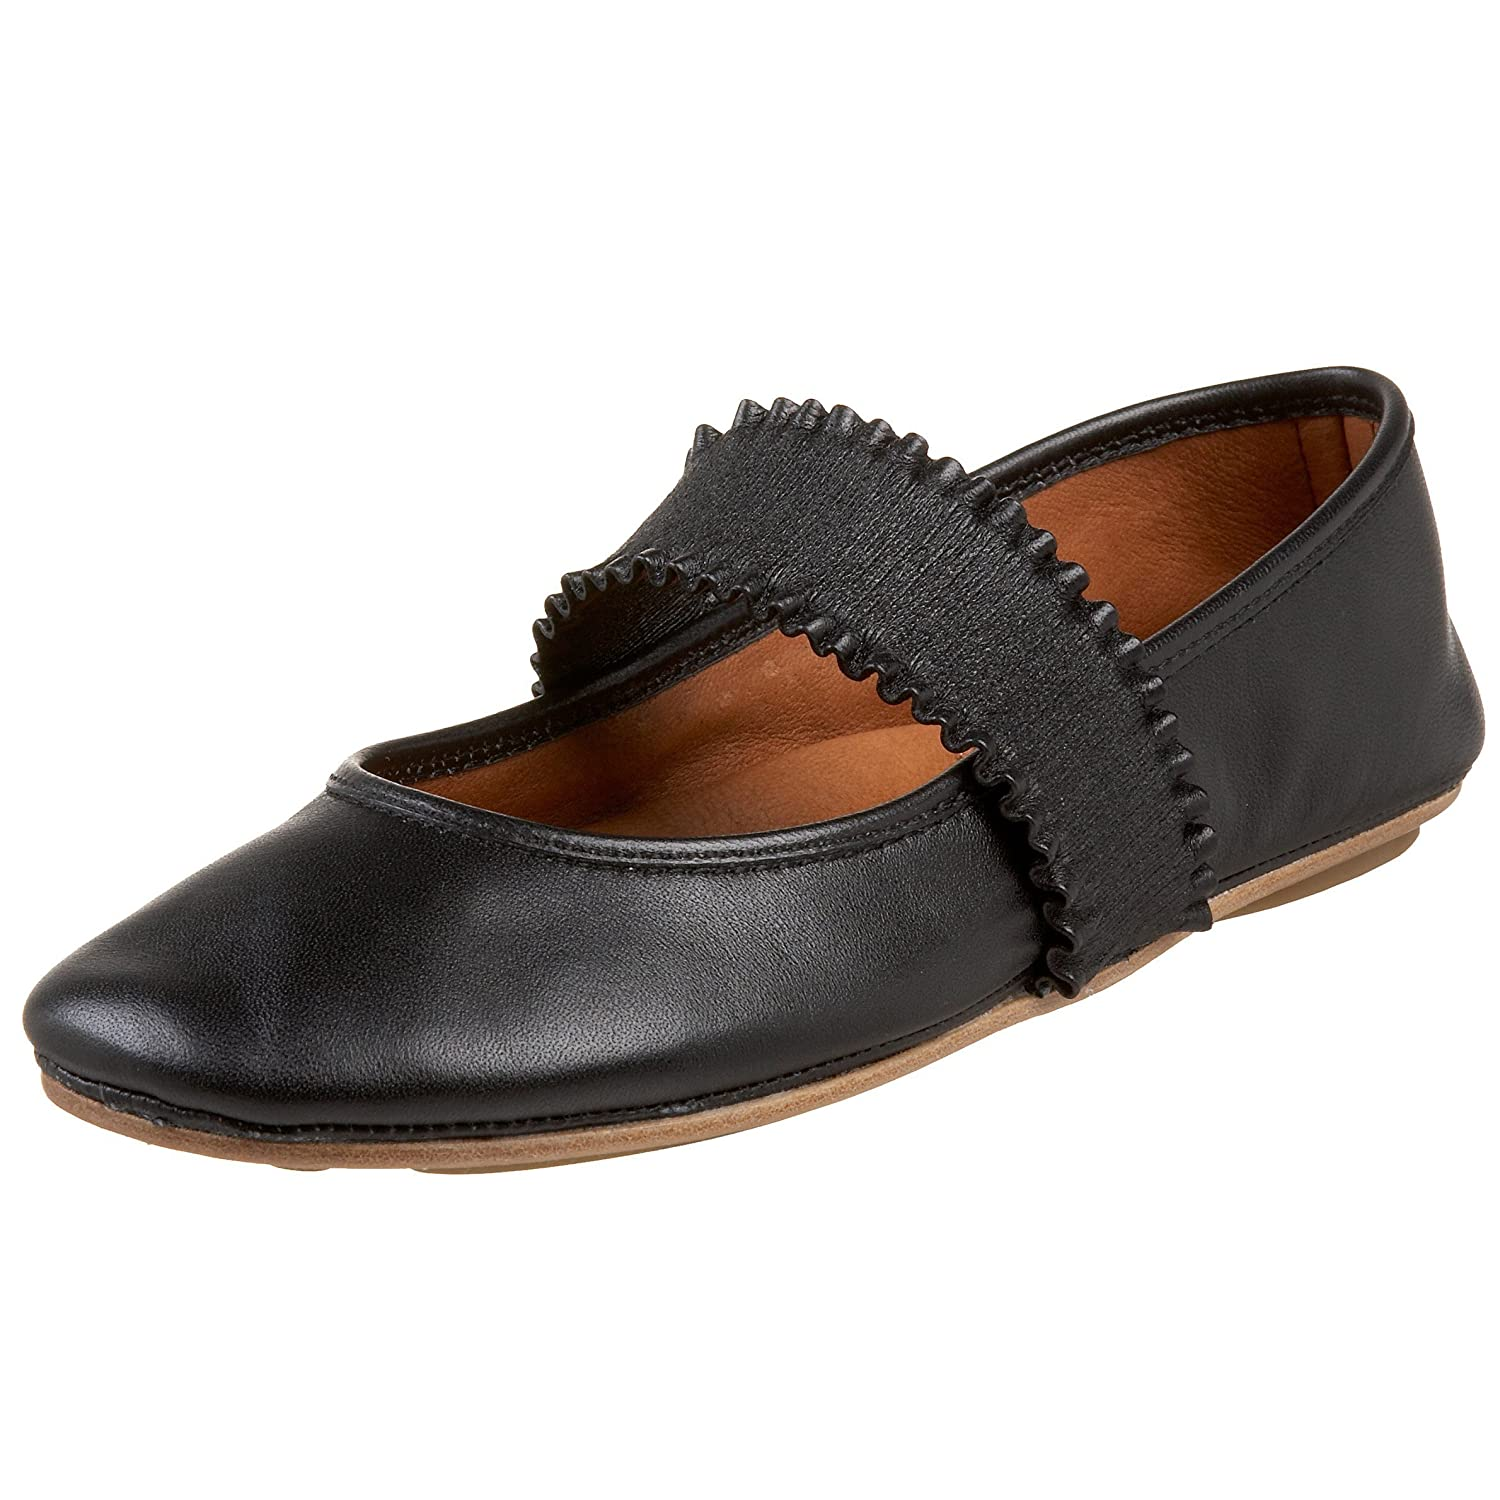 Gentle Souls by Kenneth Cole Women's Gabby Mary Jane Flat B00133GUR0 6 B(M) US|Black Leather